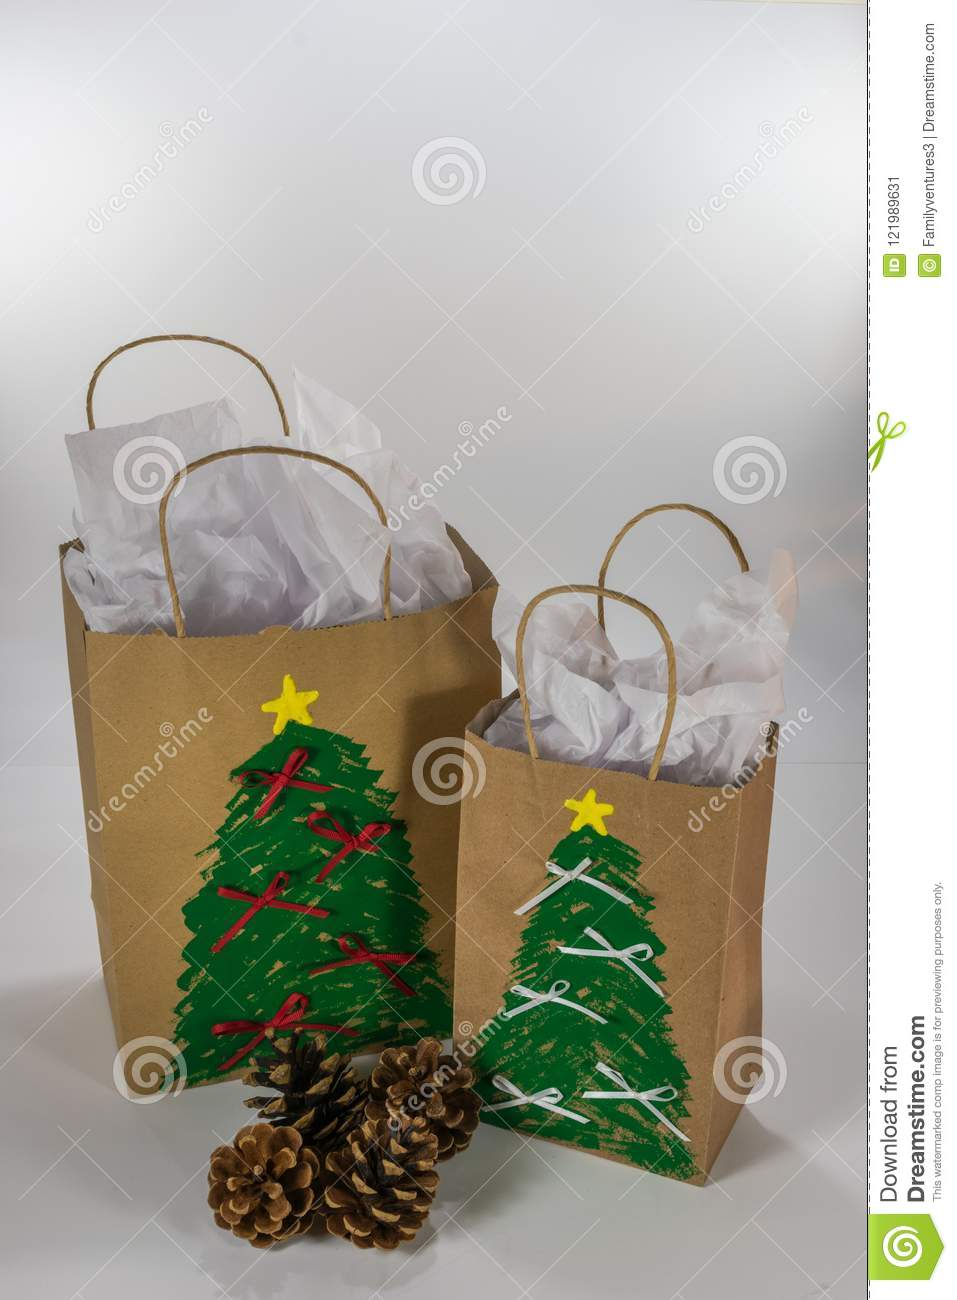 Decorated Gift Bags Ready For Christmas Stock Image - Image of gift ...